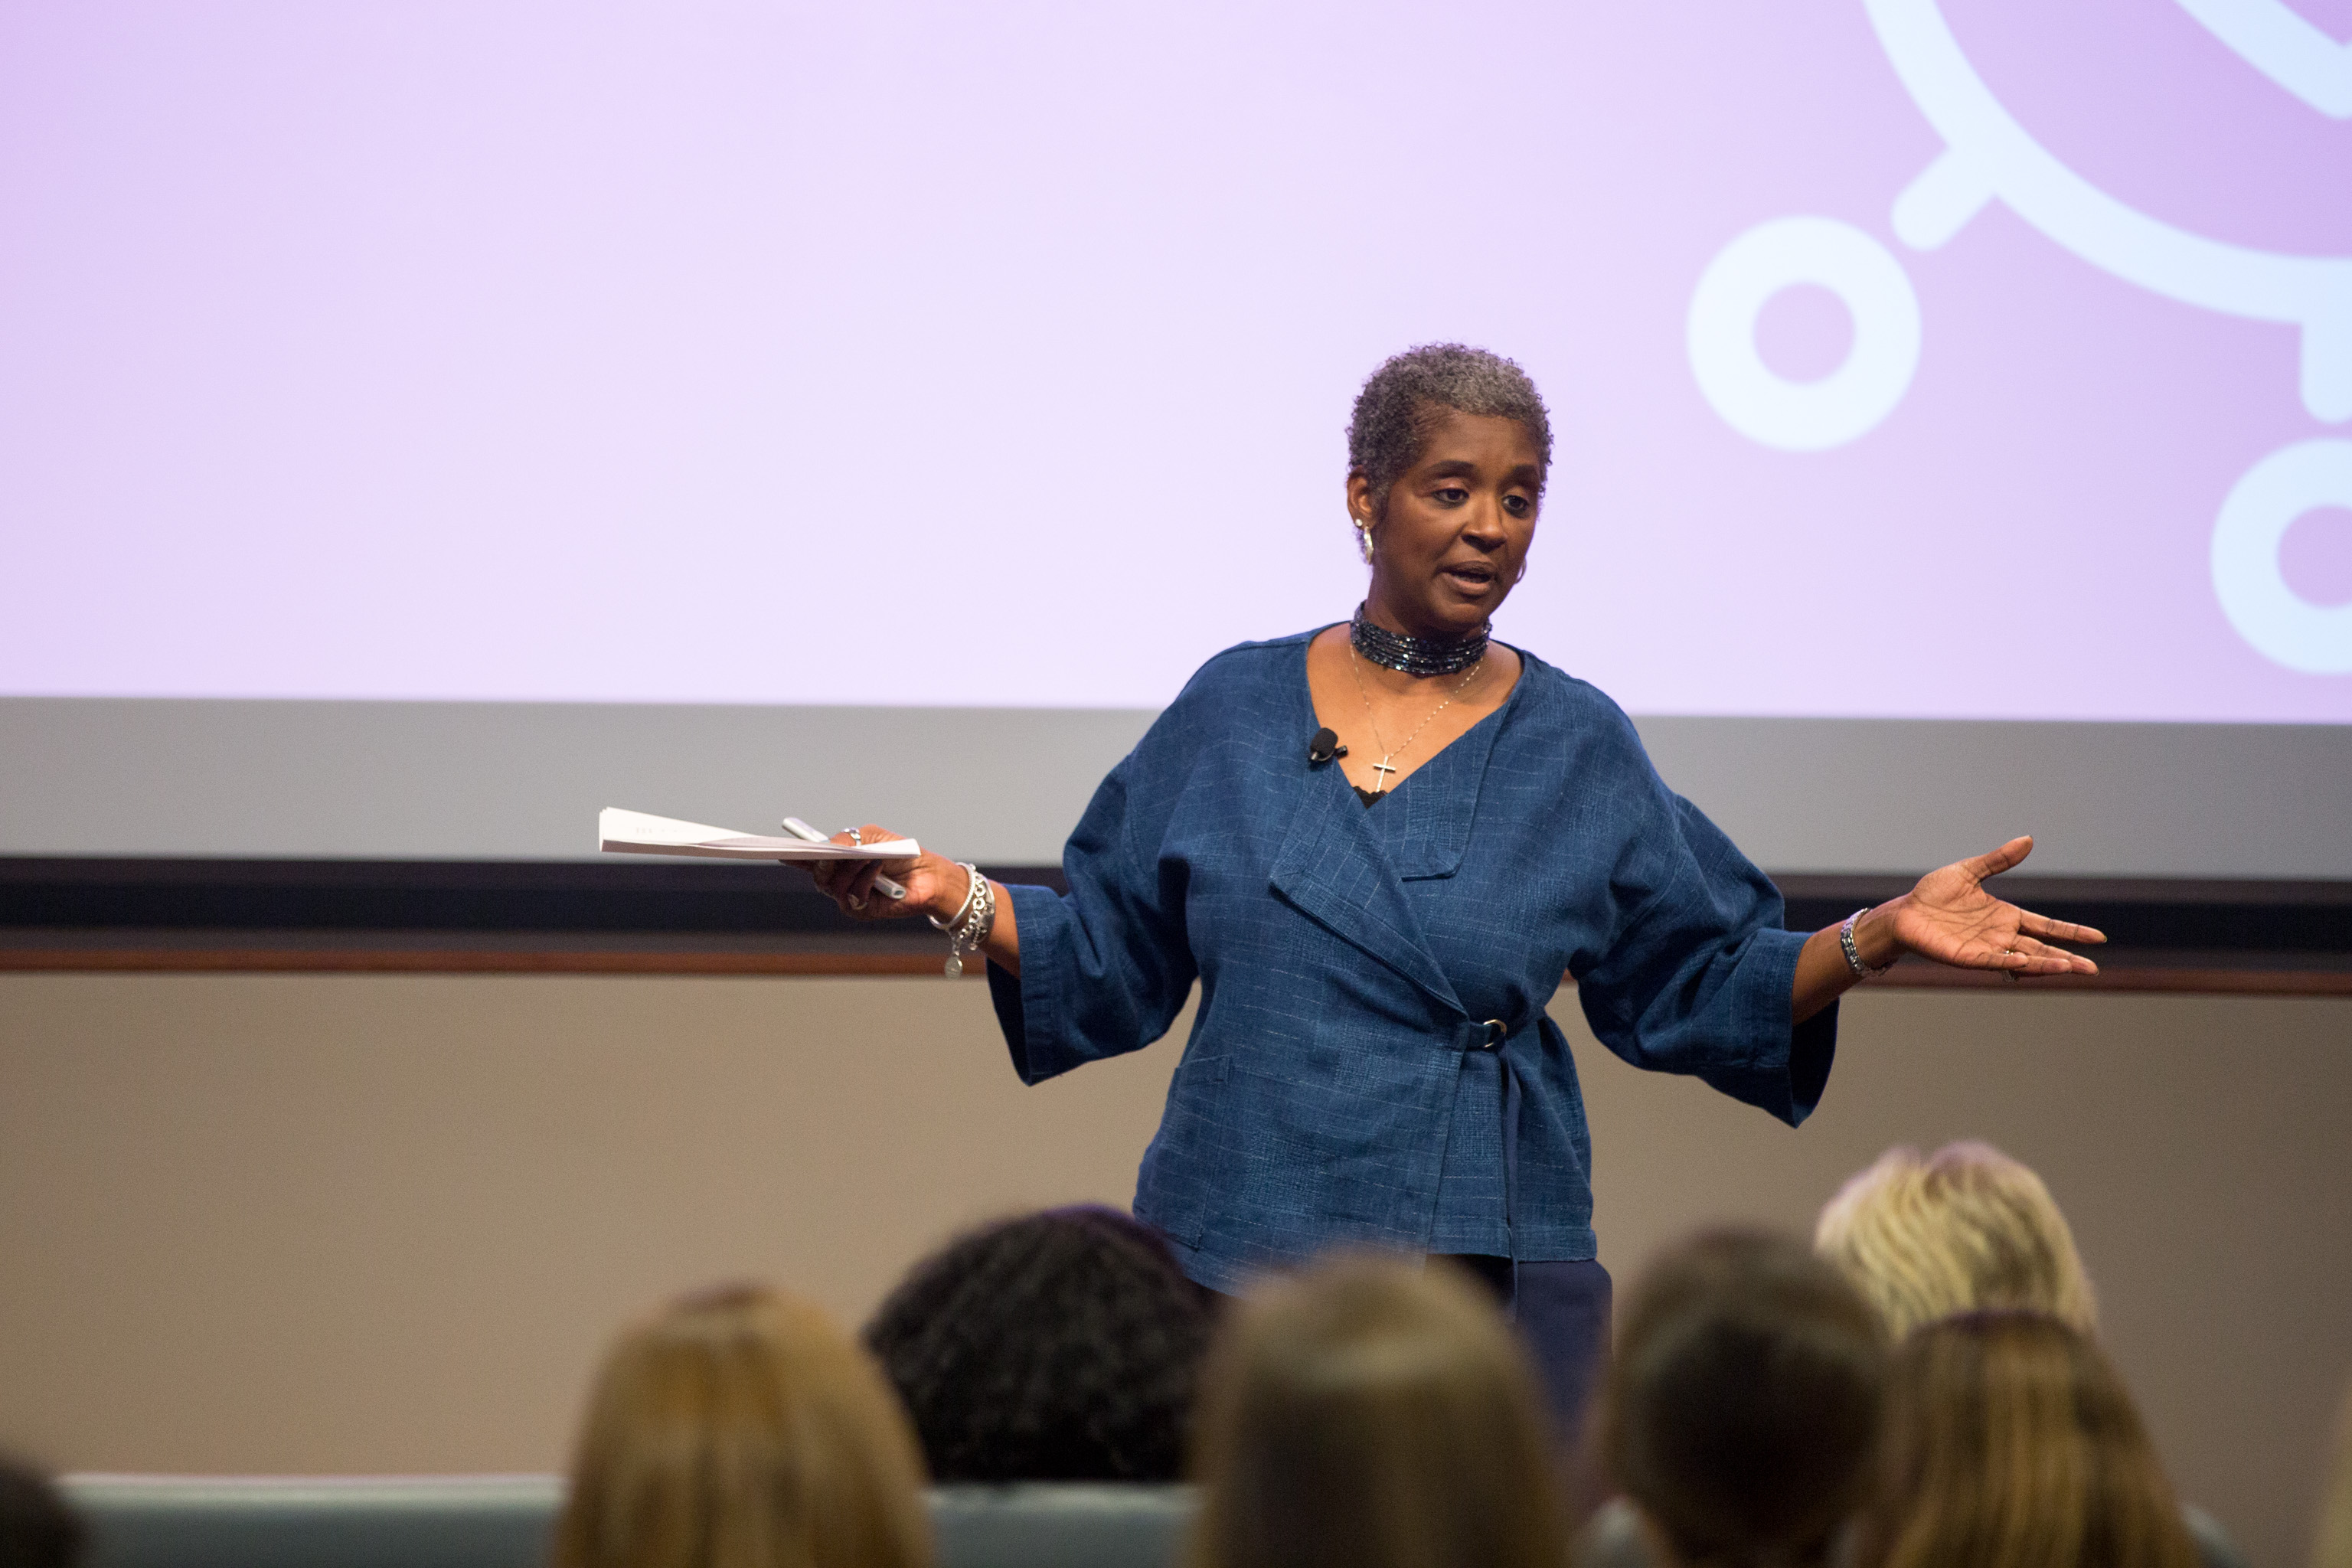 Karen Matterson delivers the keynote address at the 2019 Terry Women's Initiative Student Conference.